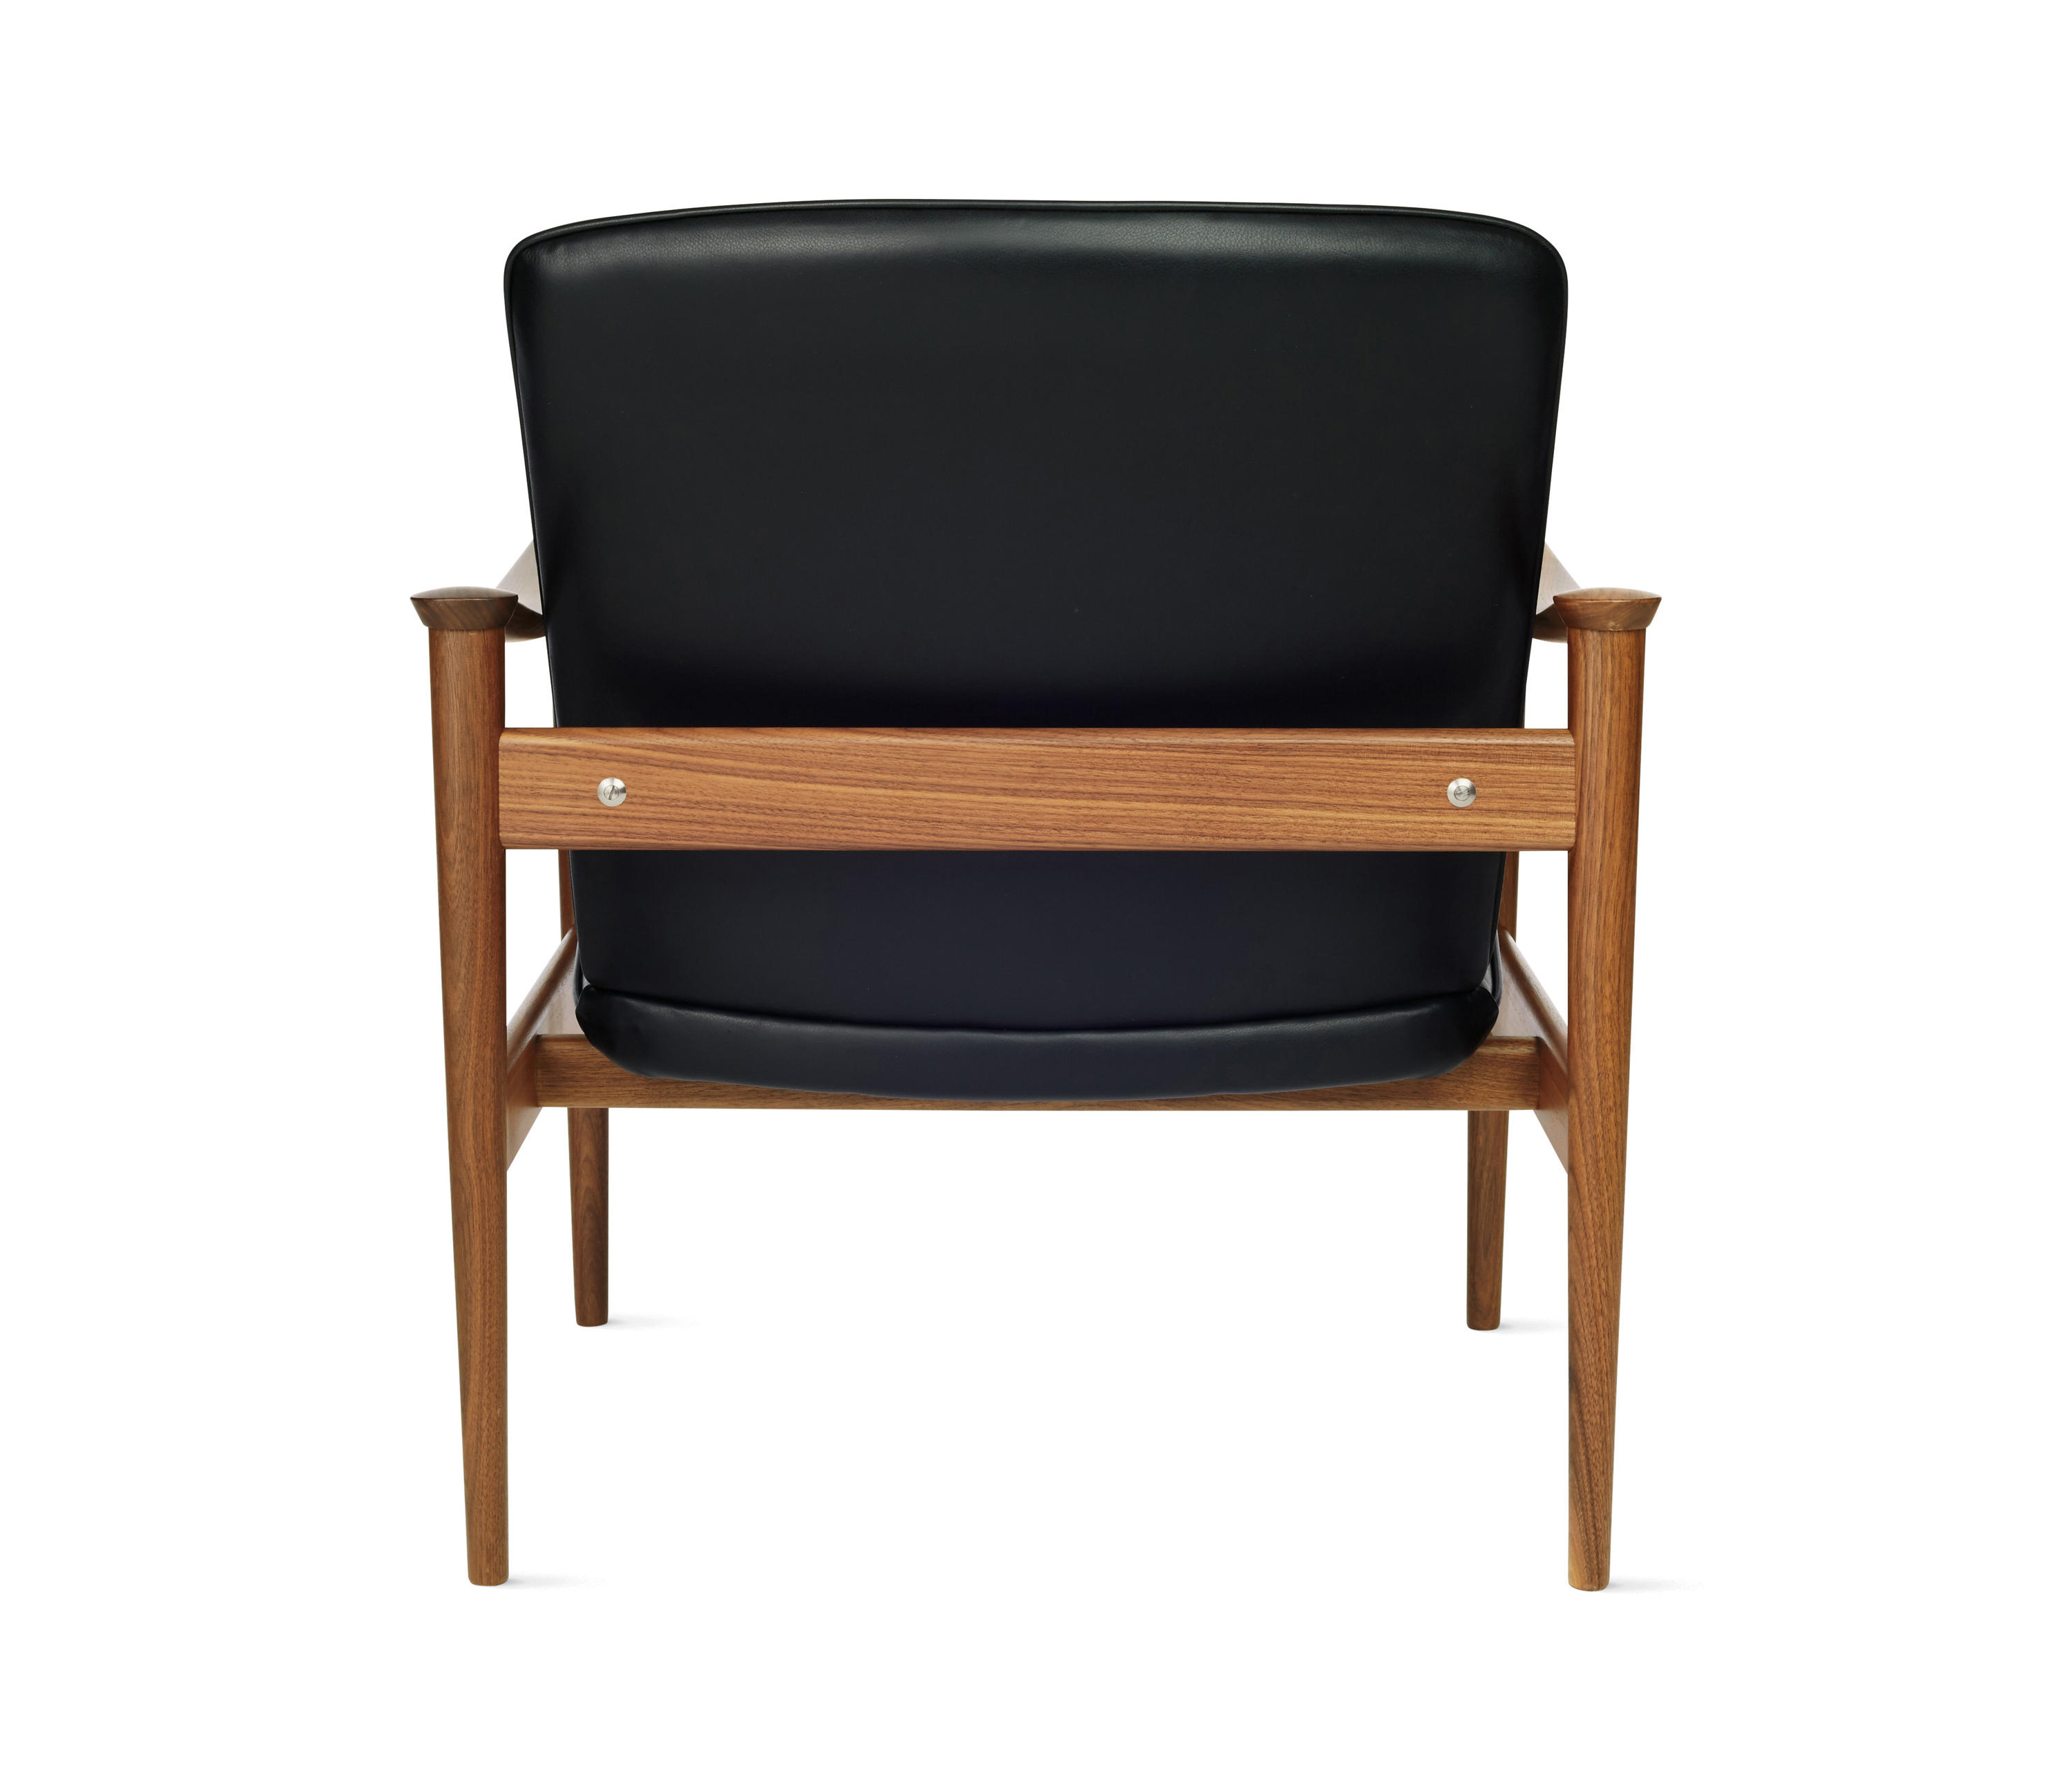 chair design within reach high backed chairs uk modell 711 lounge from